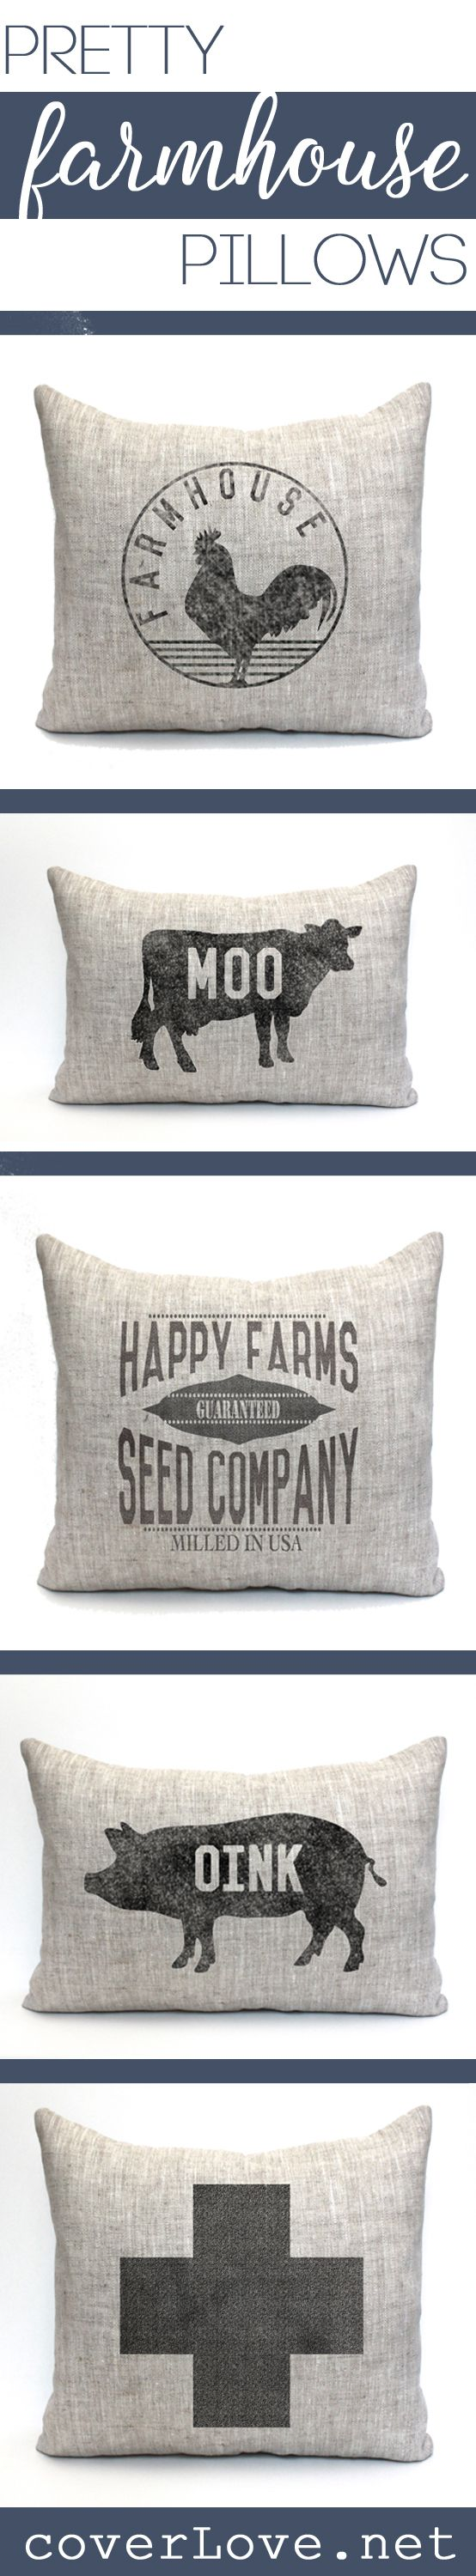 farmhouse pillows, rustic pillows, rustic decor, farmhouse decor, custom pillows, farmhouse living